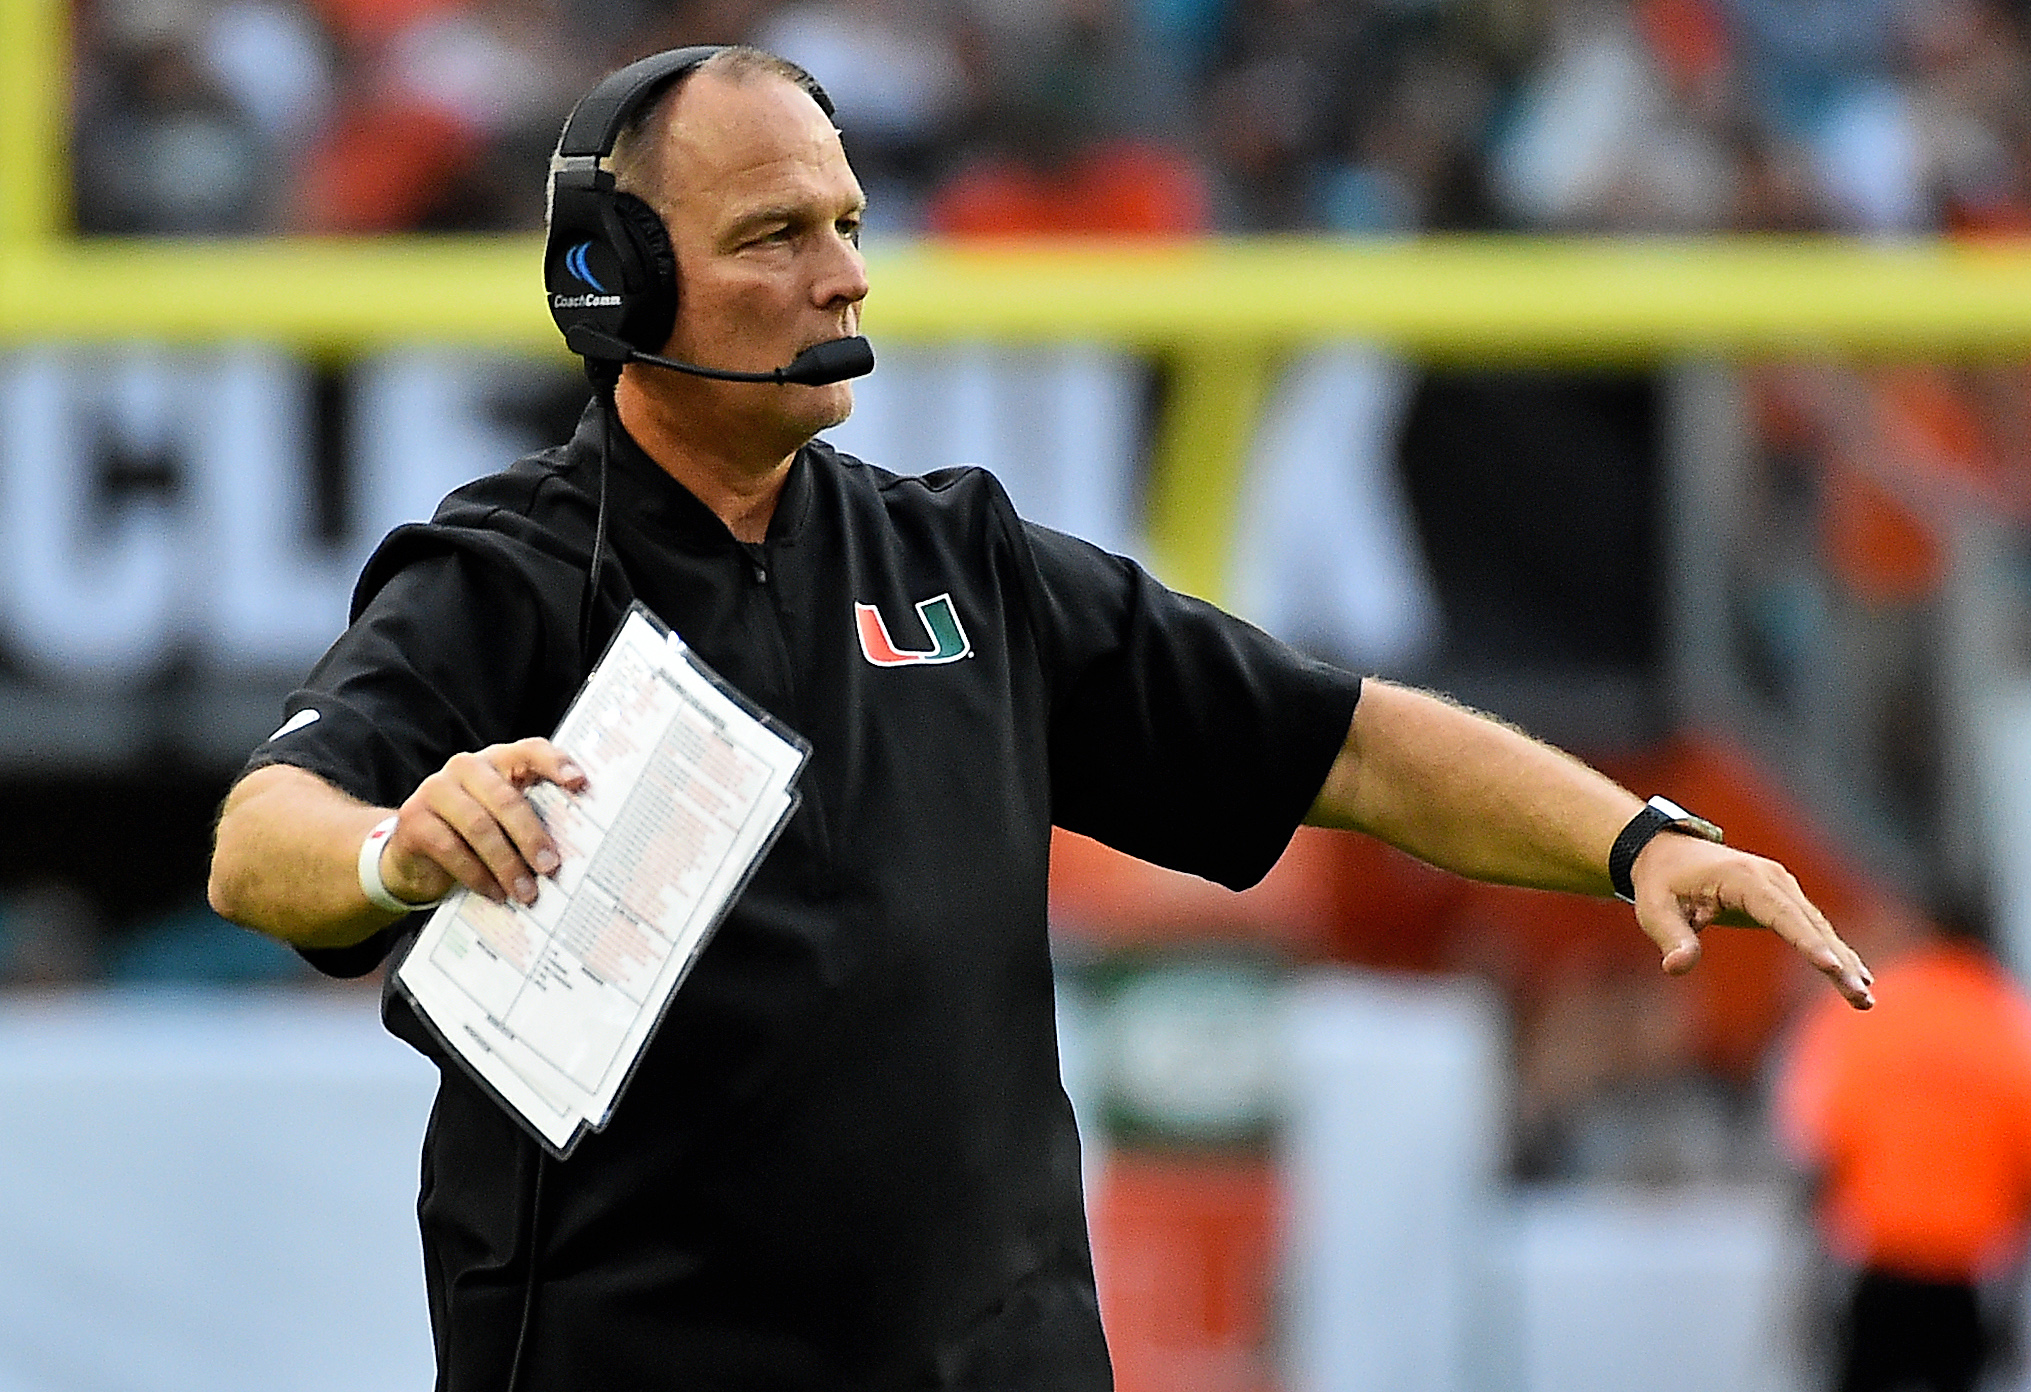 Mark Richt tweets he's fine after suffering heart attack